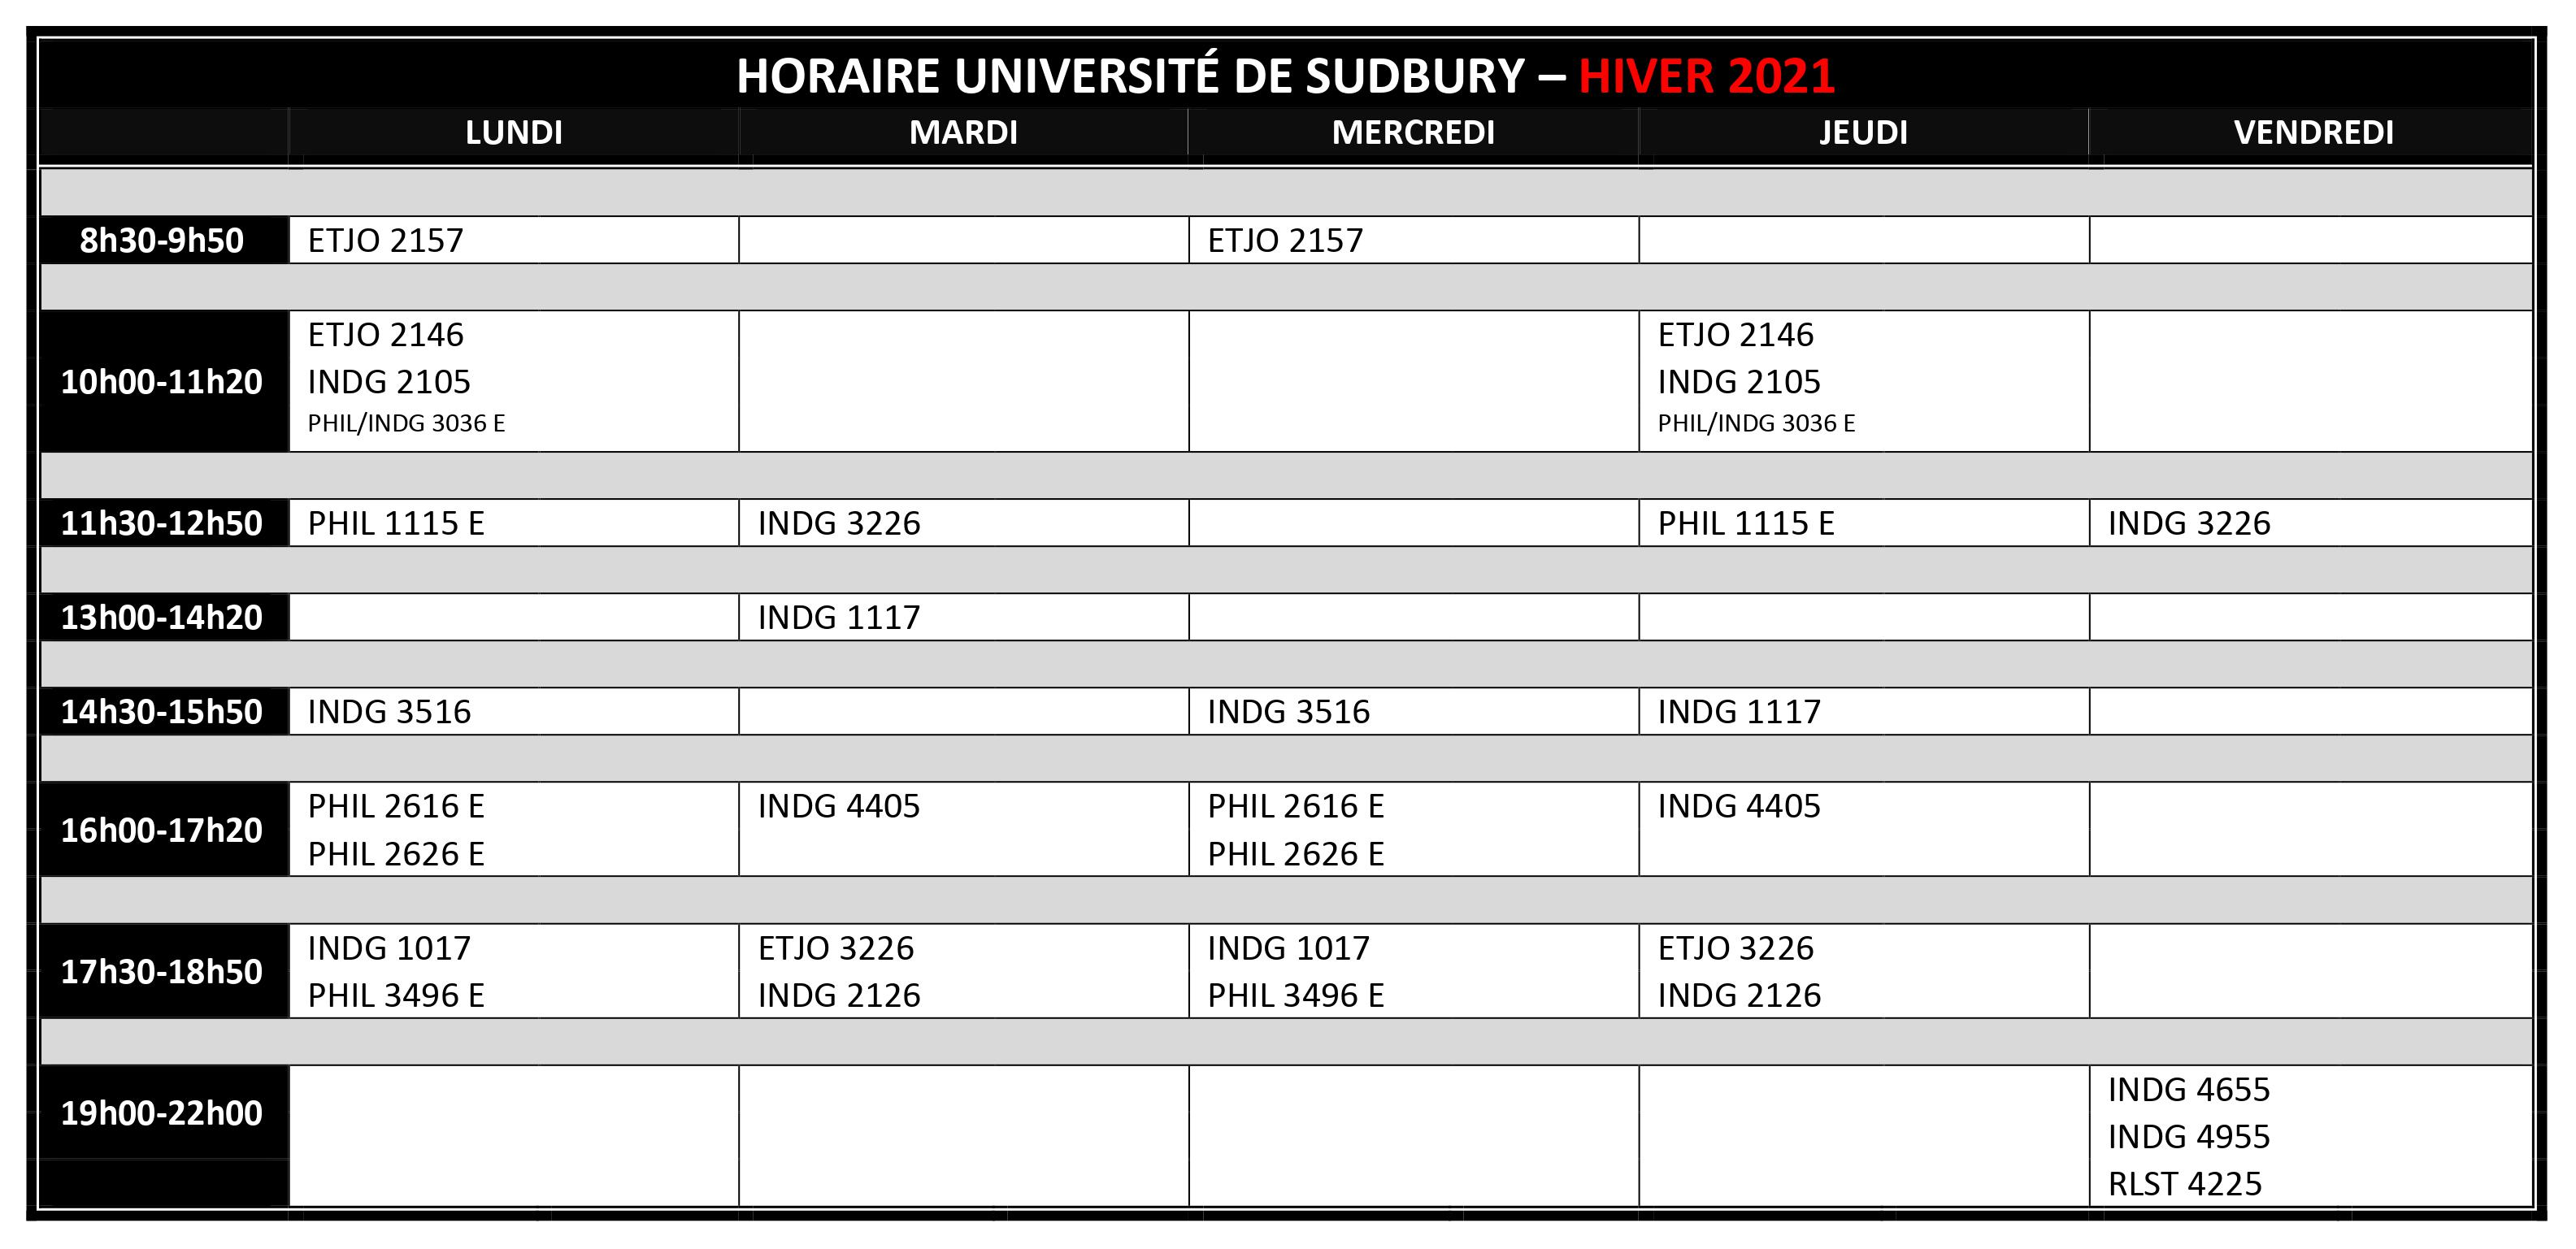 2020 2021 HIVER HORAIRE FR